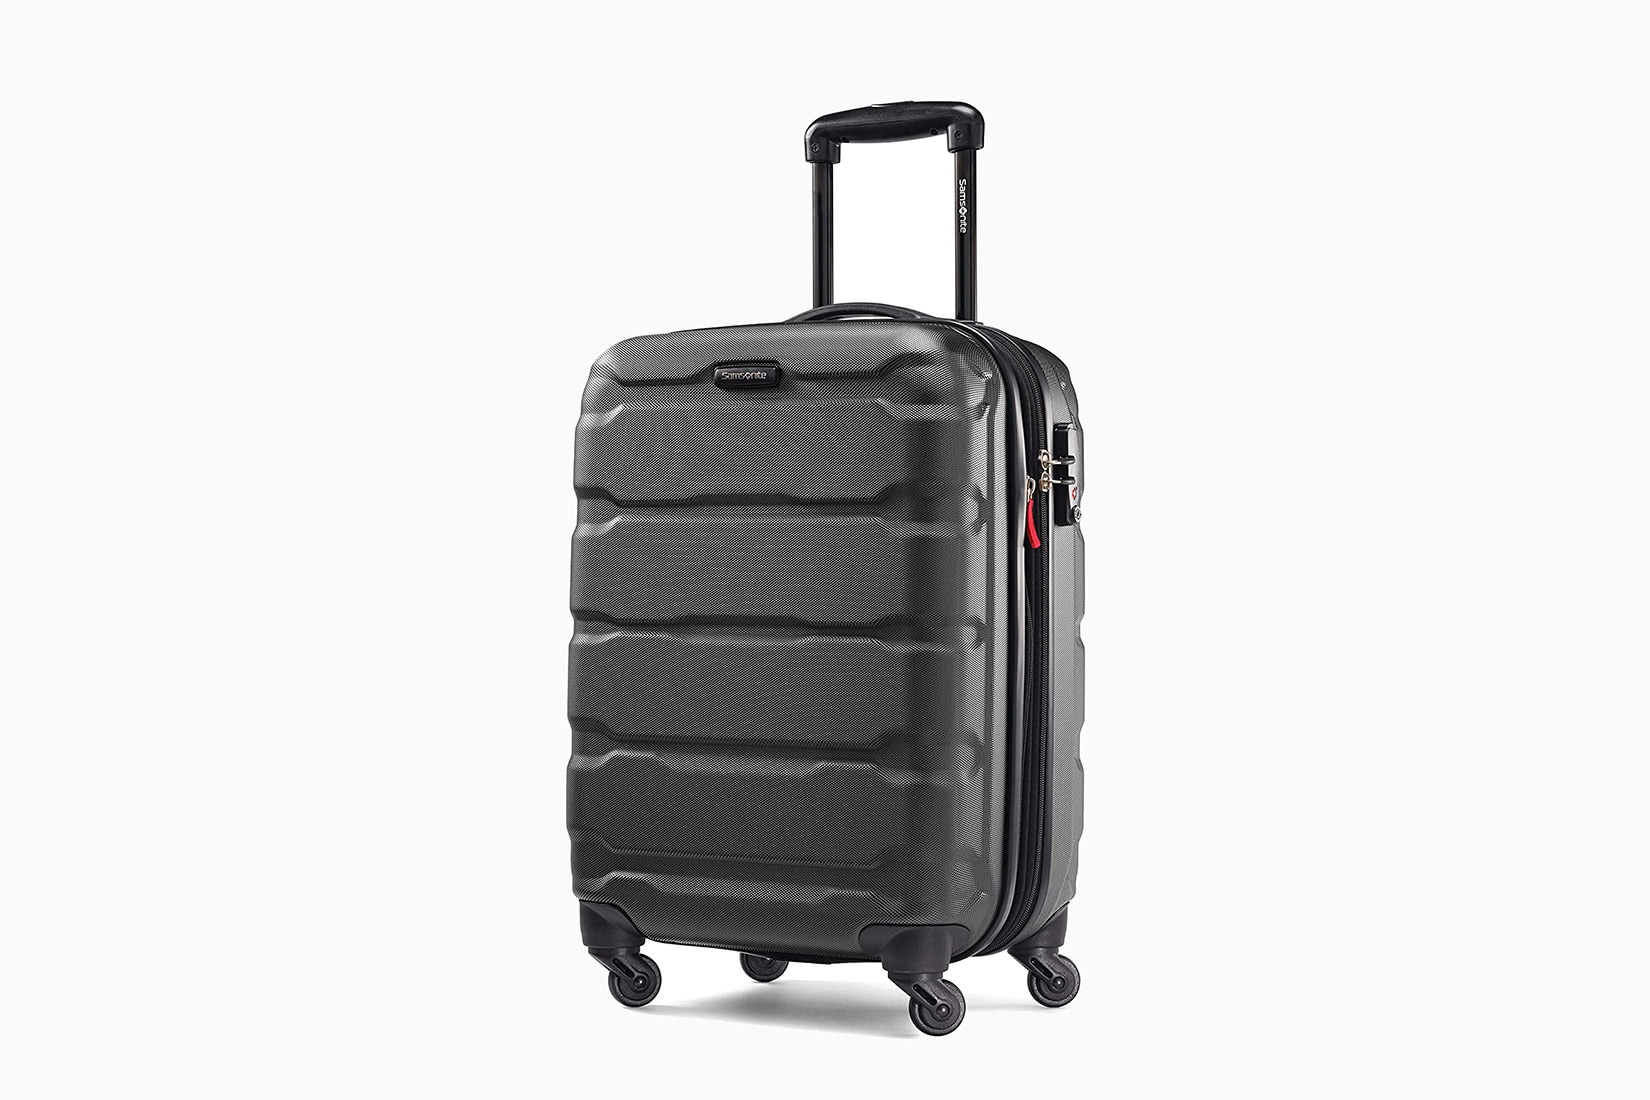 best carry-on suitcase travel samsonite robust - Luxe Digital